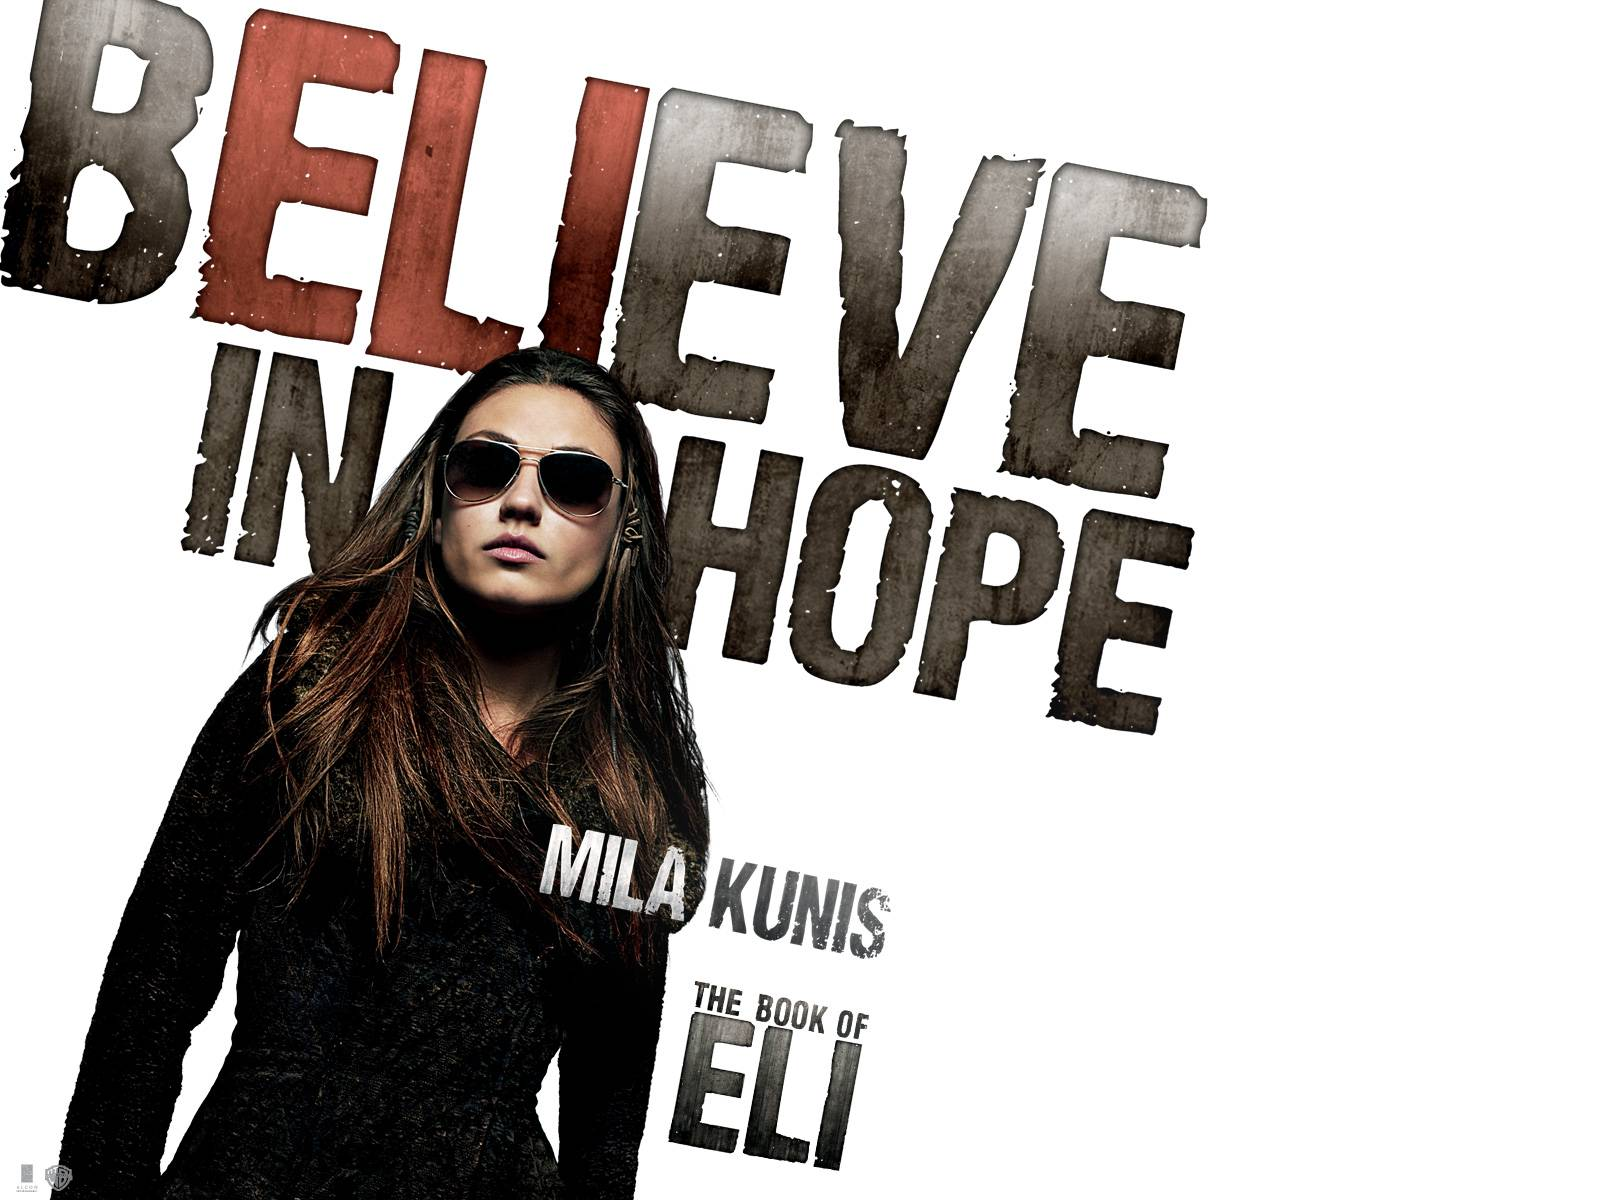 Mila Kunis Book of Eli 224.18 Kb